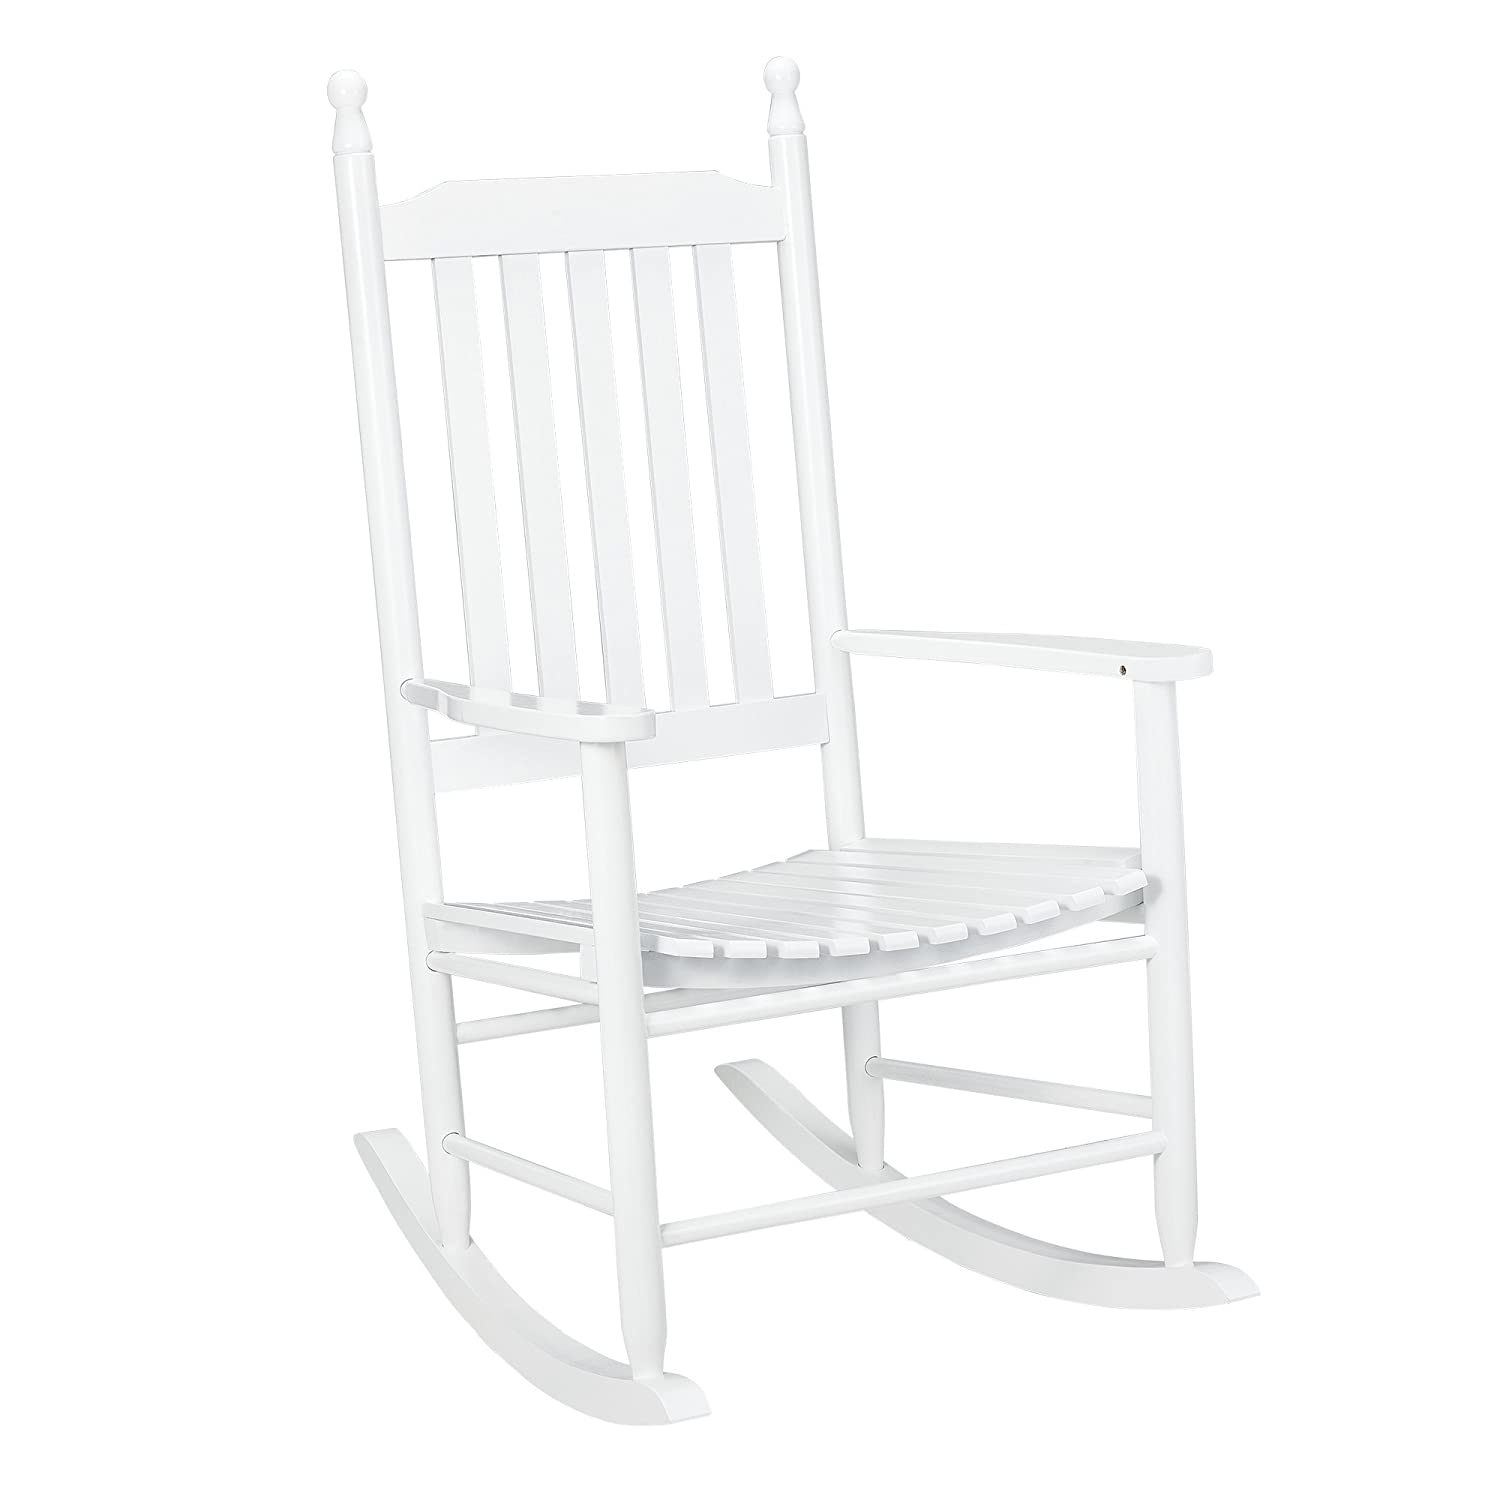 [casa.pro] rocking chair/wooden swinging chair/relaxing / leisure/lounging / seat/WHITE [casa.pro]®